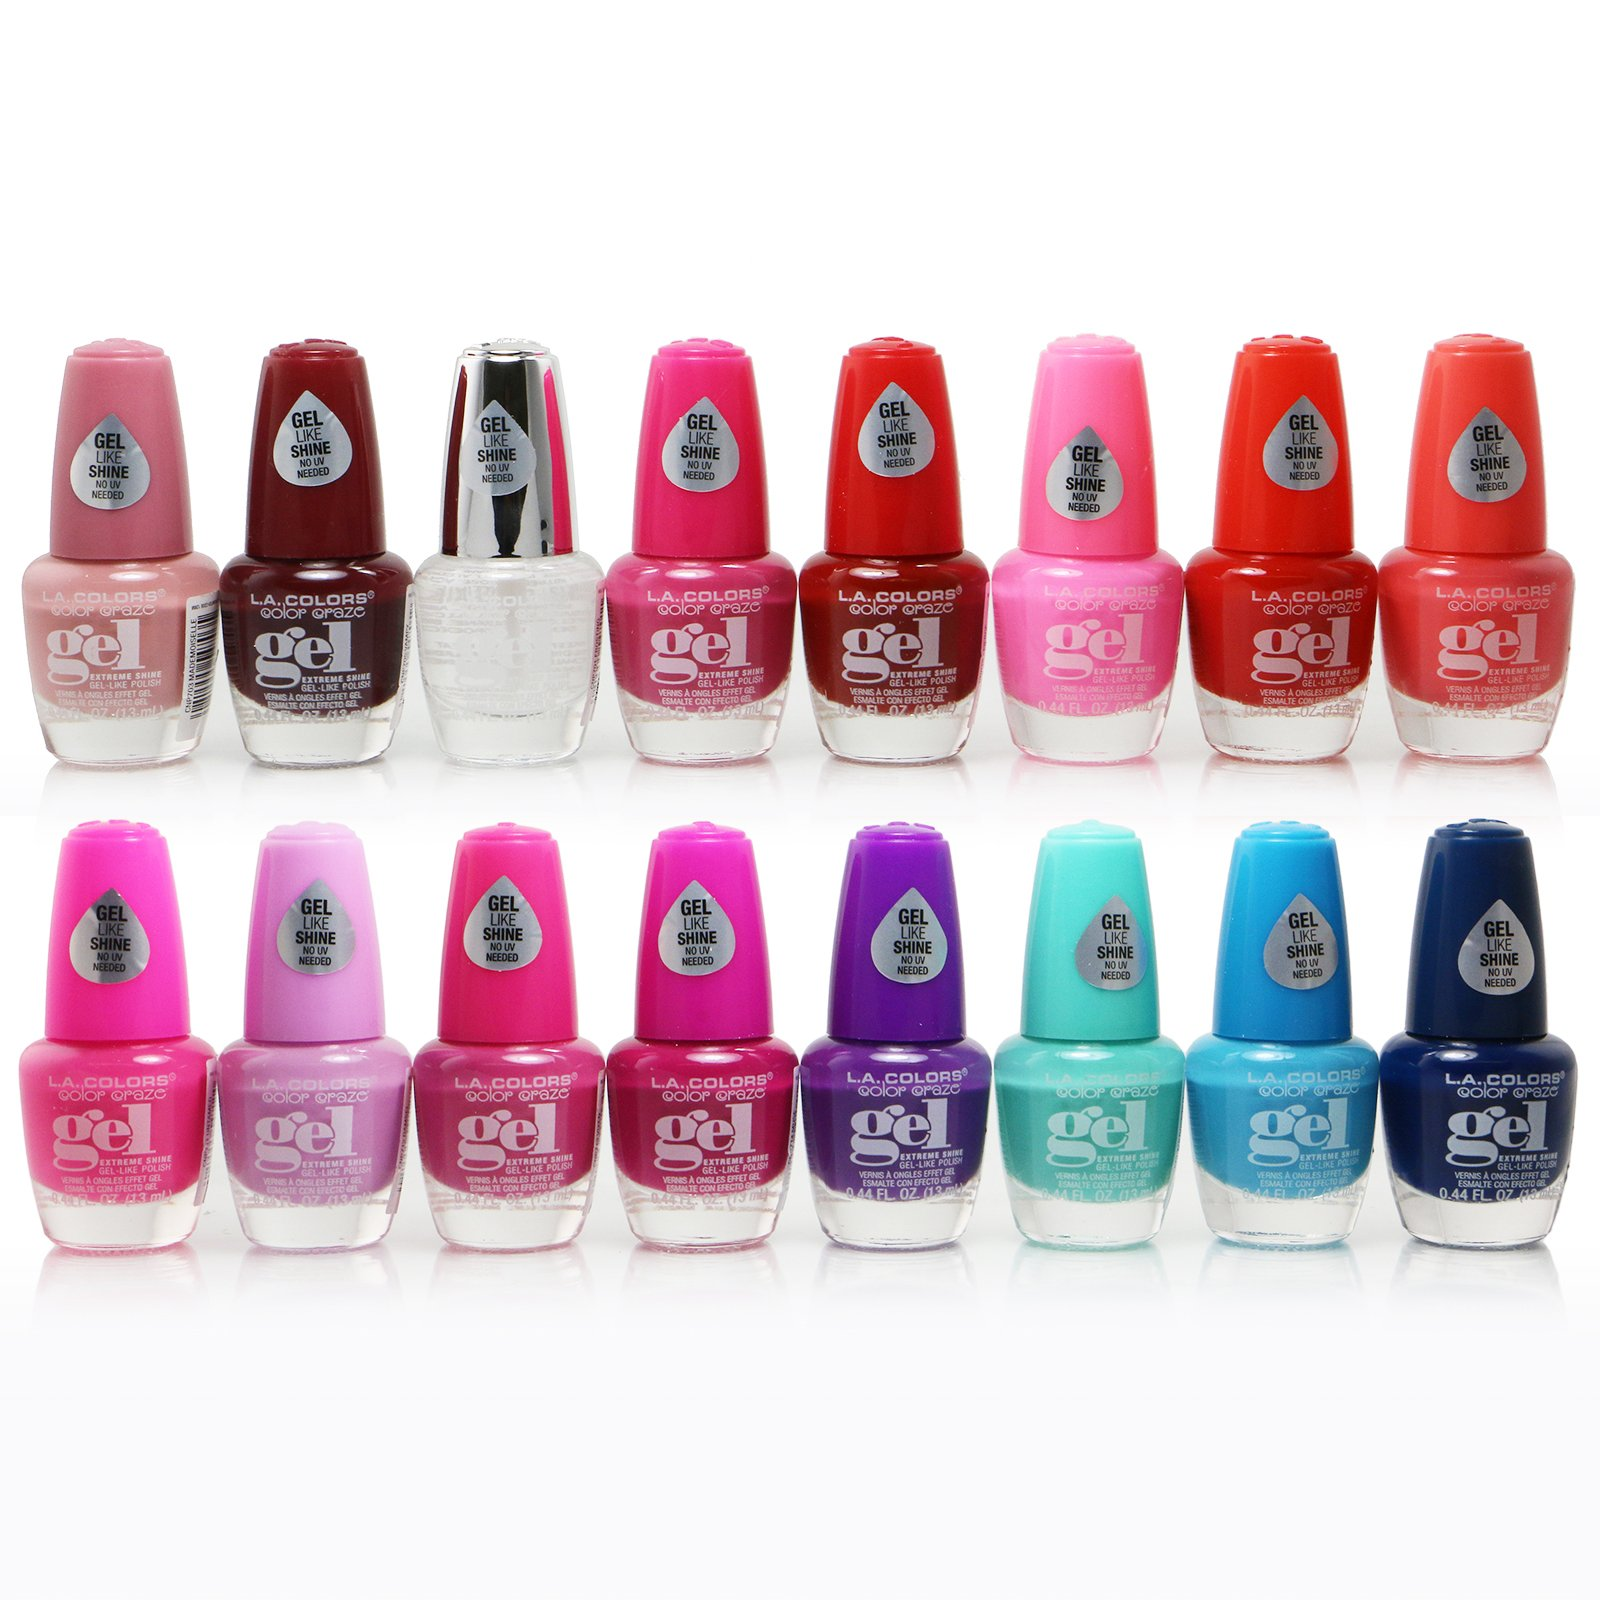 Amazon.com: 16pc L.A. Colors Extreme Shine gel nail polish no UV ...